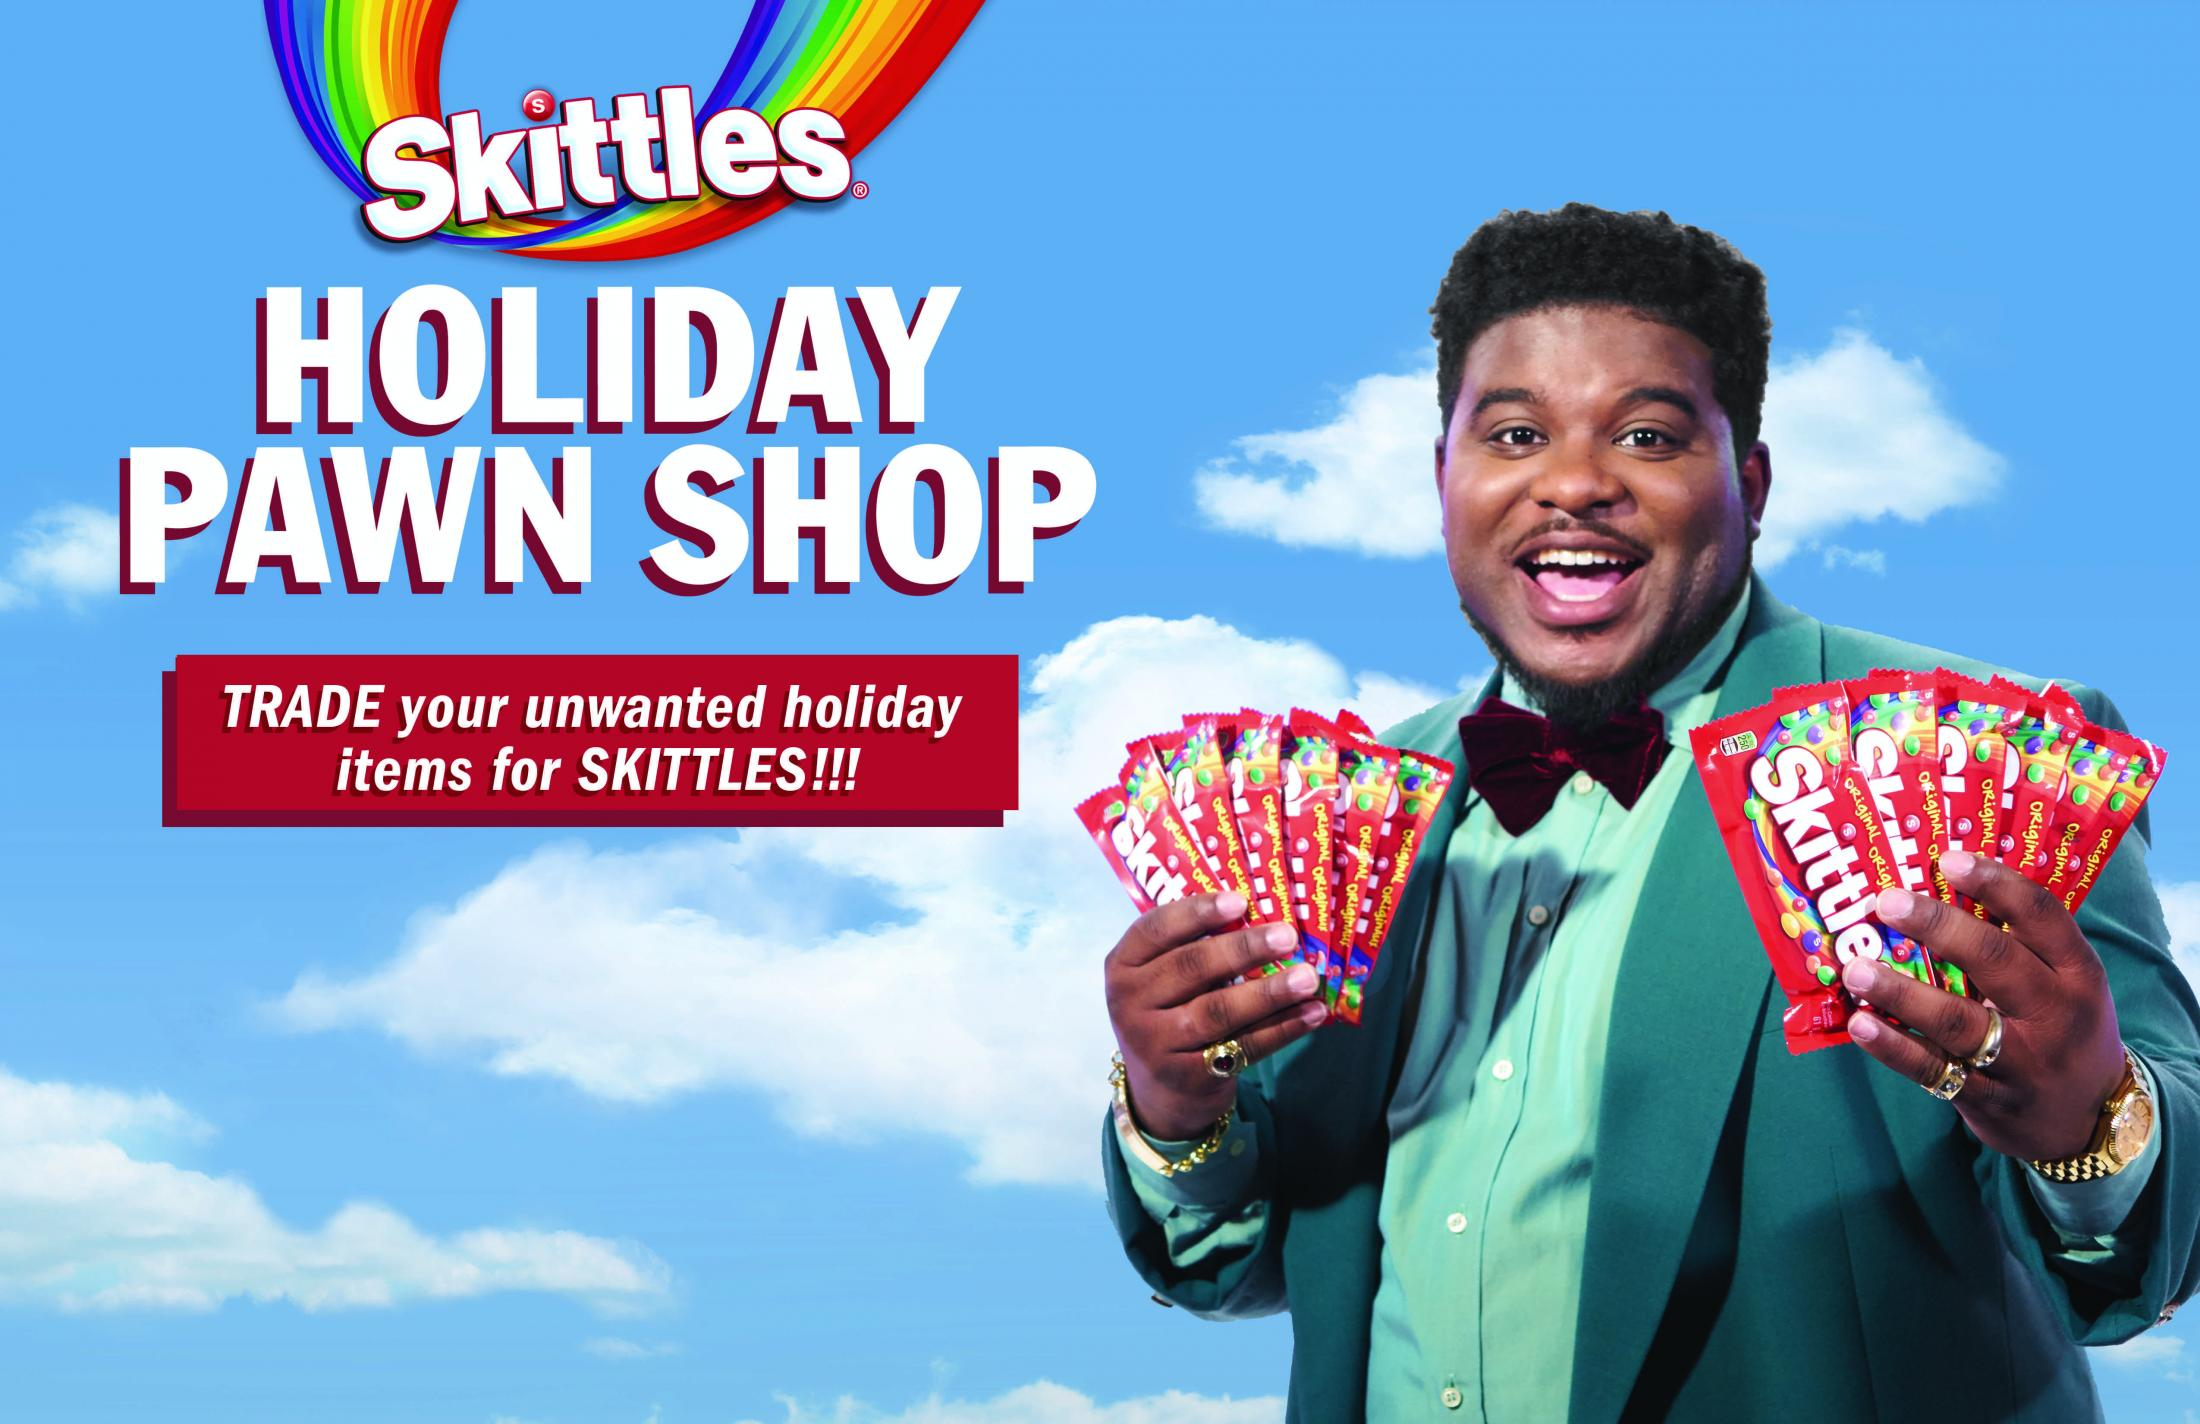 Thumbnail for Skittles Holiday Pawn Shop